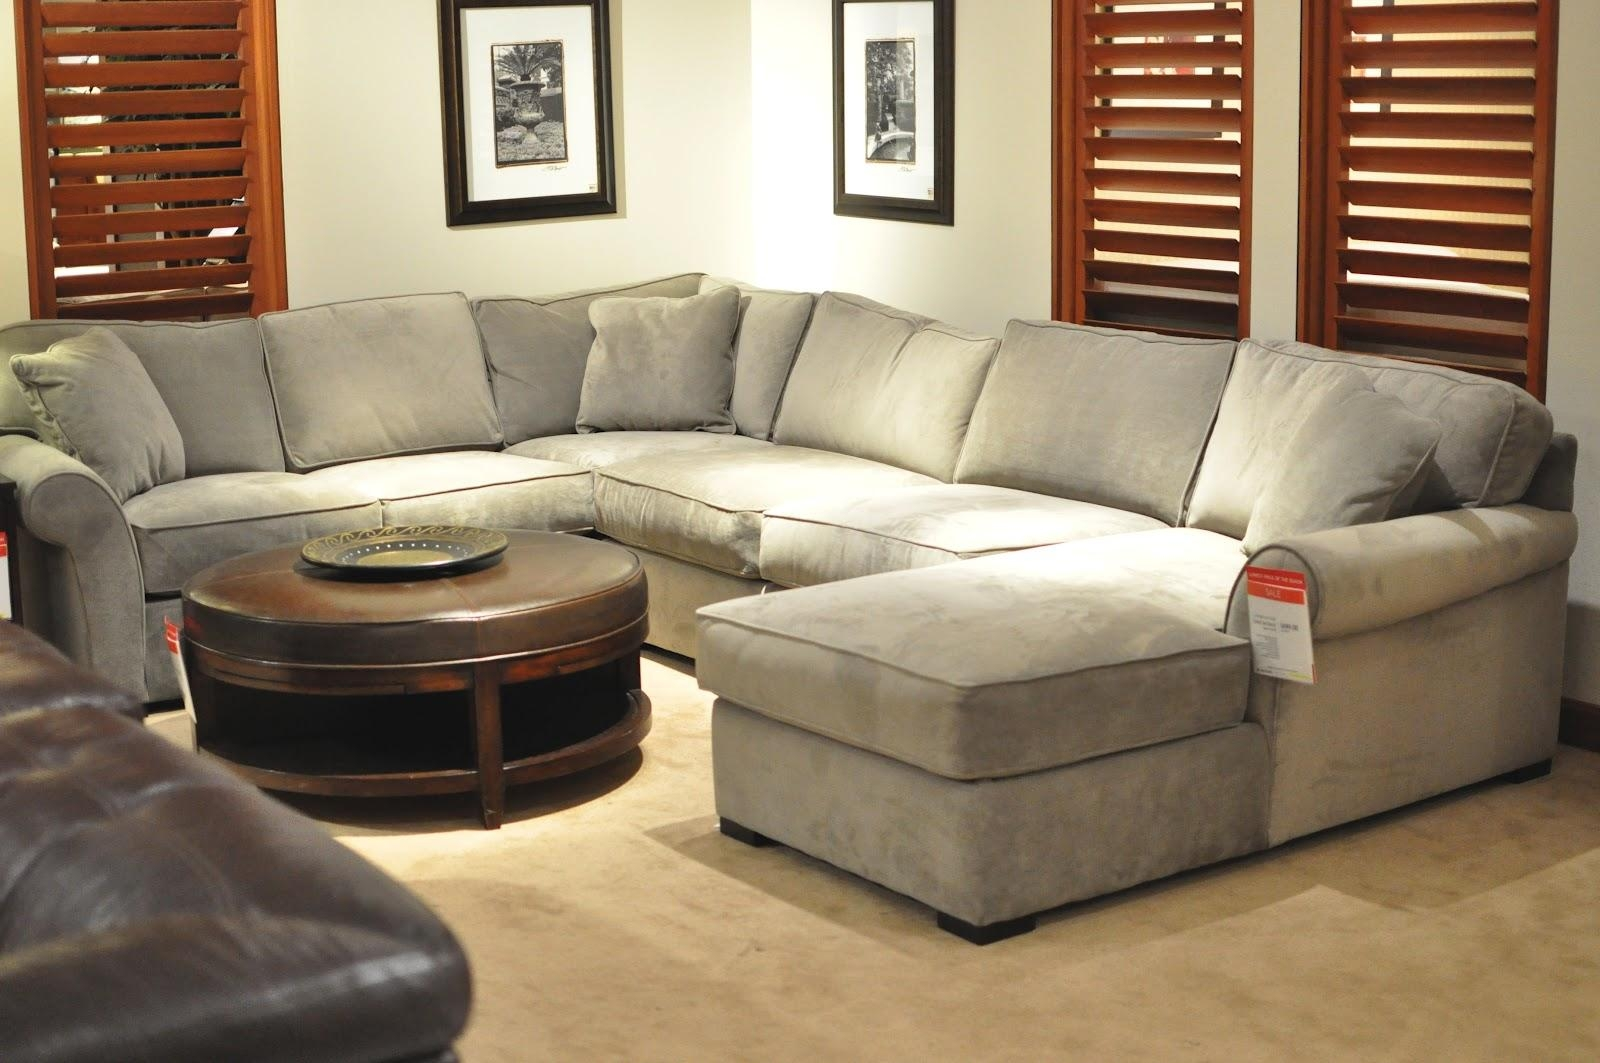 Corner Sofa Good Quality High Quality Leather Sectional Sofas Sofa Perfect Elegance